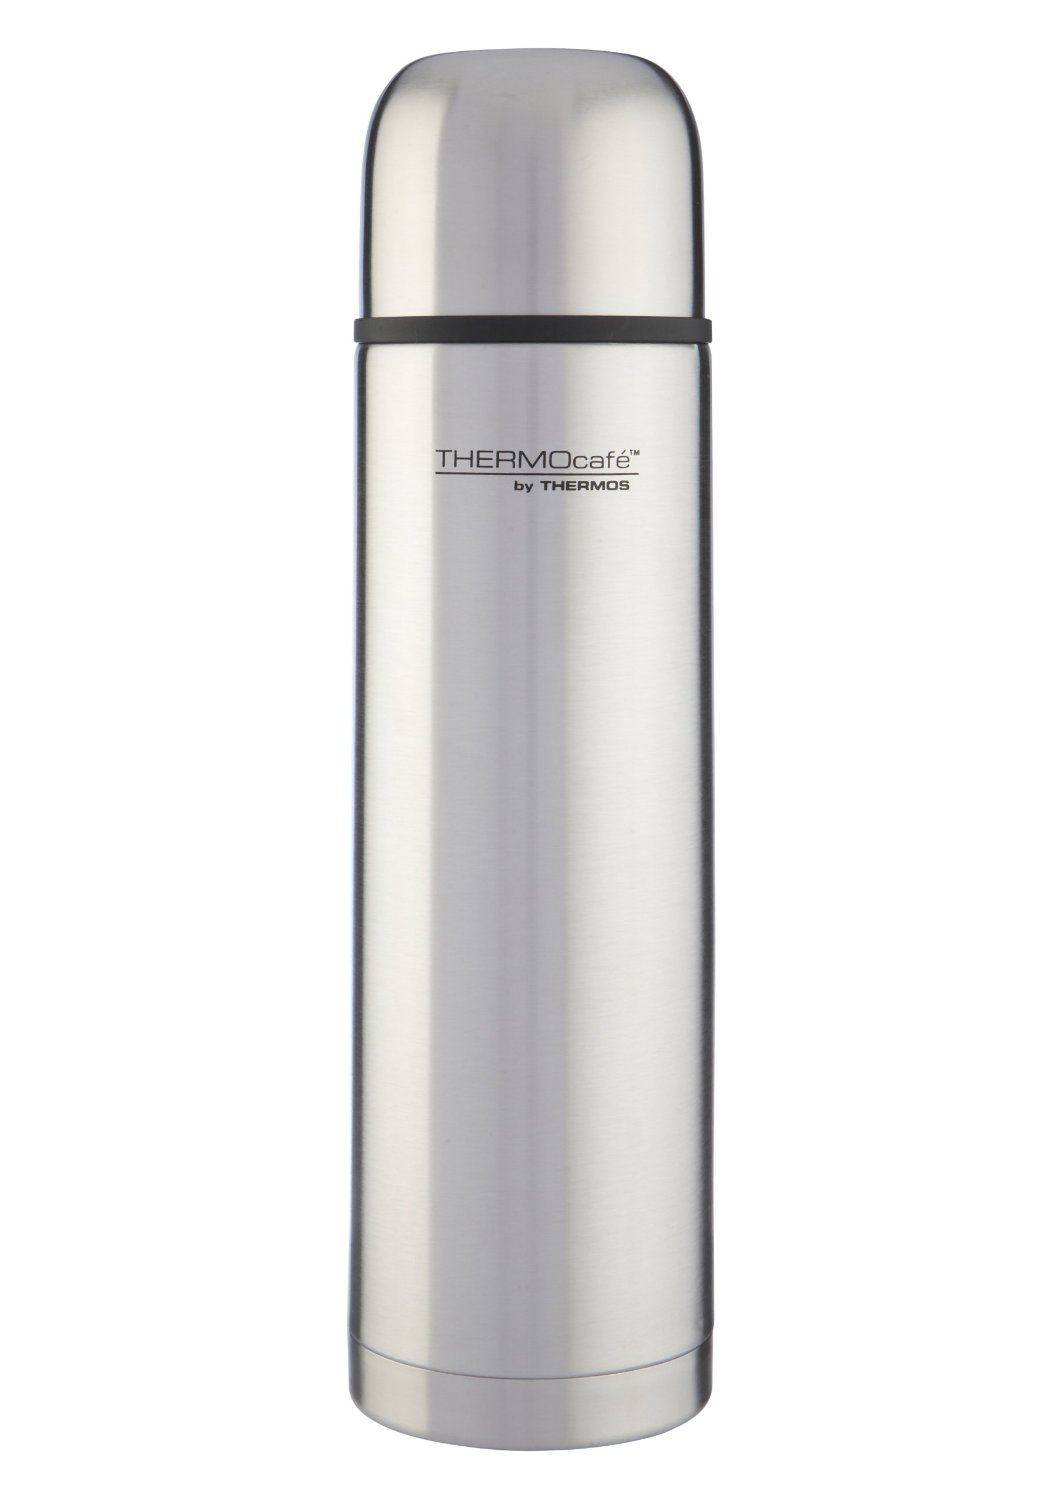 Thermos Cafe Thermos Thermocafe Stainless Steel Flask 5l Et 01l